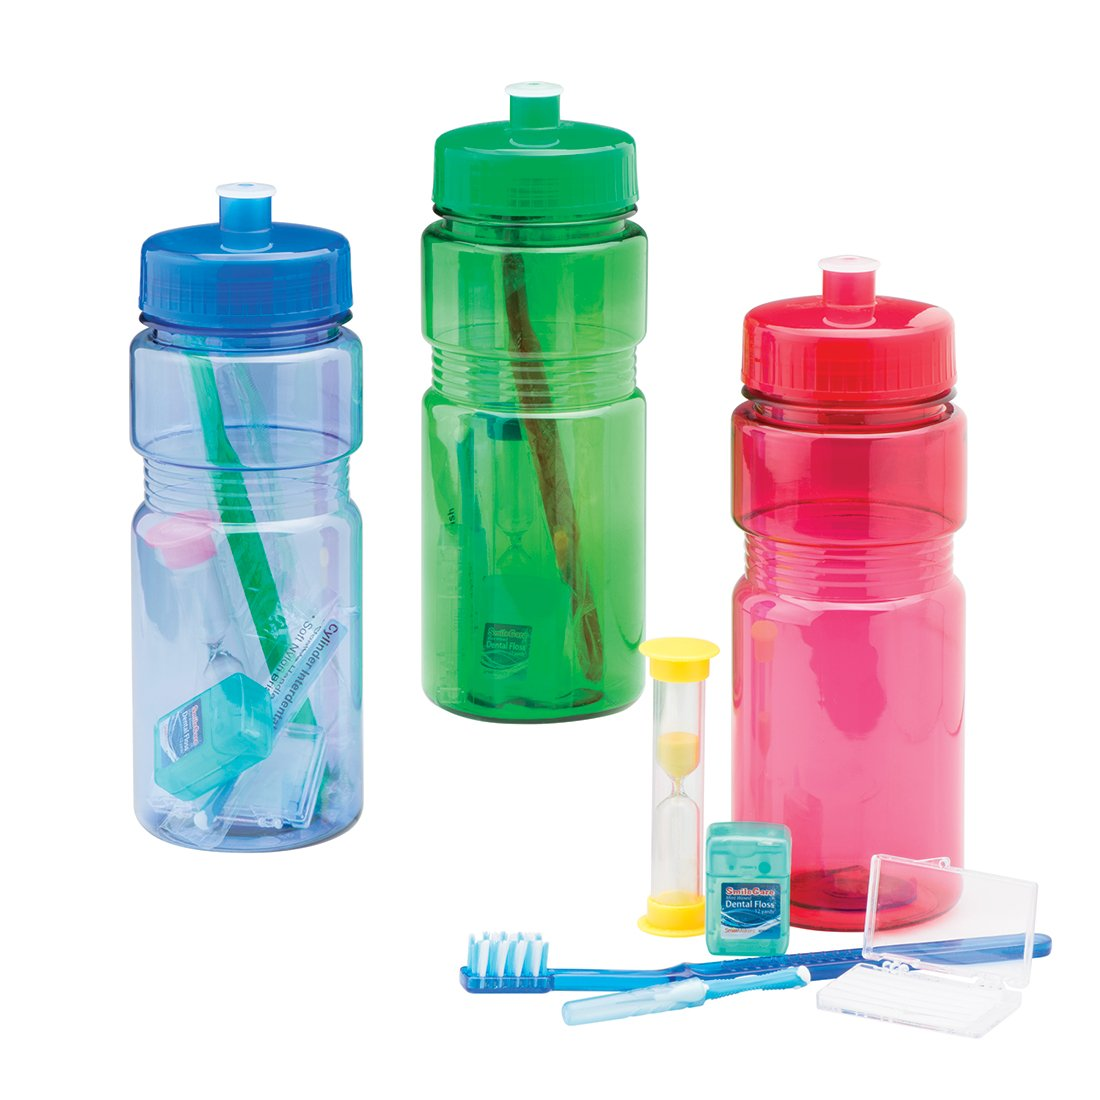 SmileMakers Water Bottle Ortho Kits - Dental Hygiene Products and Supplies - 144 per Pack by SmileMakers (Image #1)